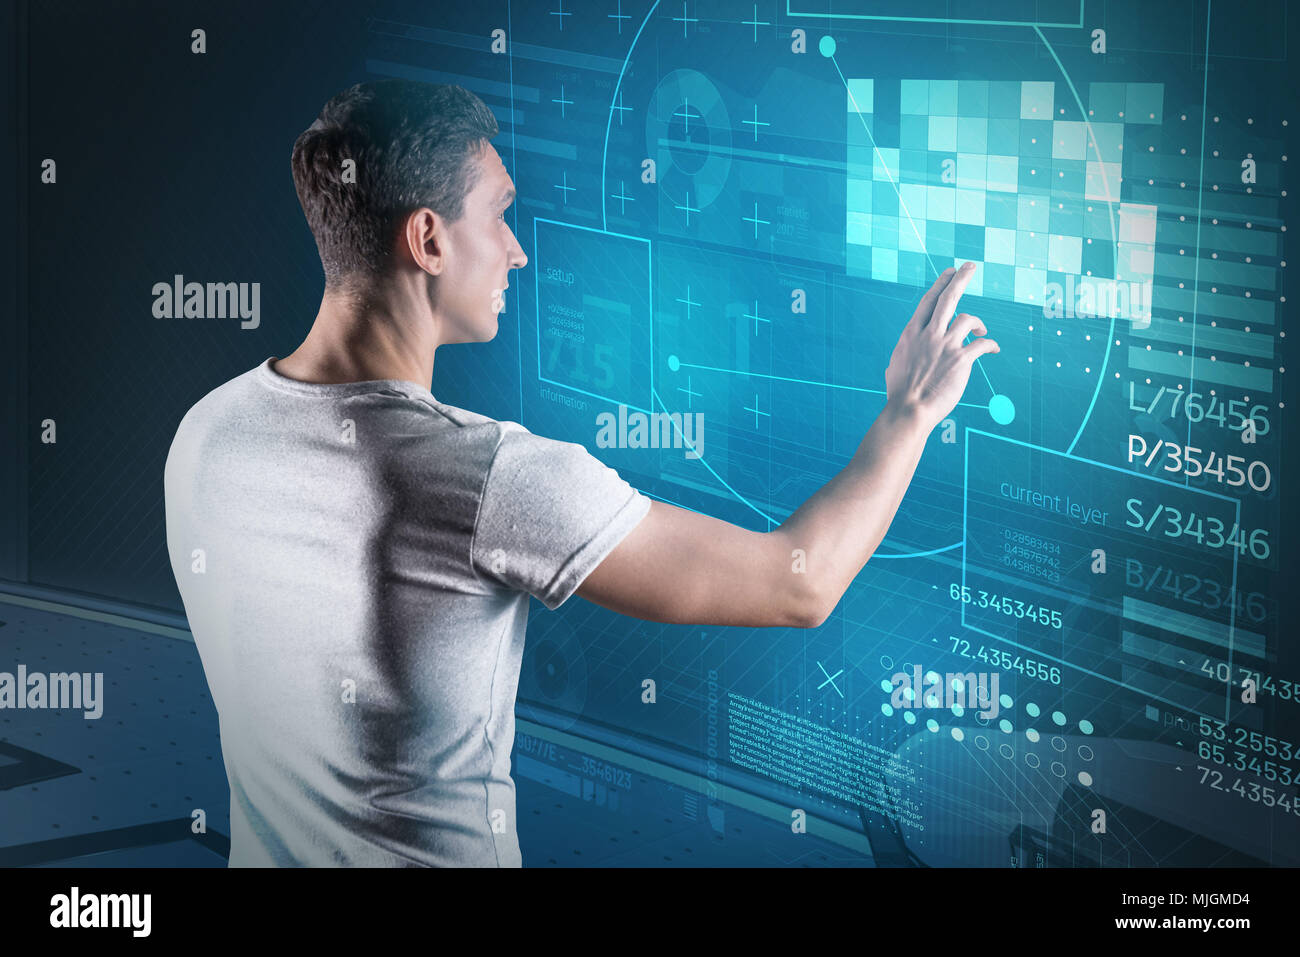 Clever web developer looking interested while working in his office - Stock Image